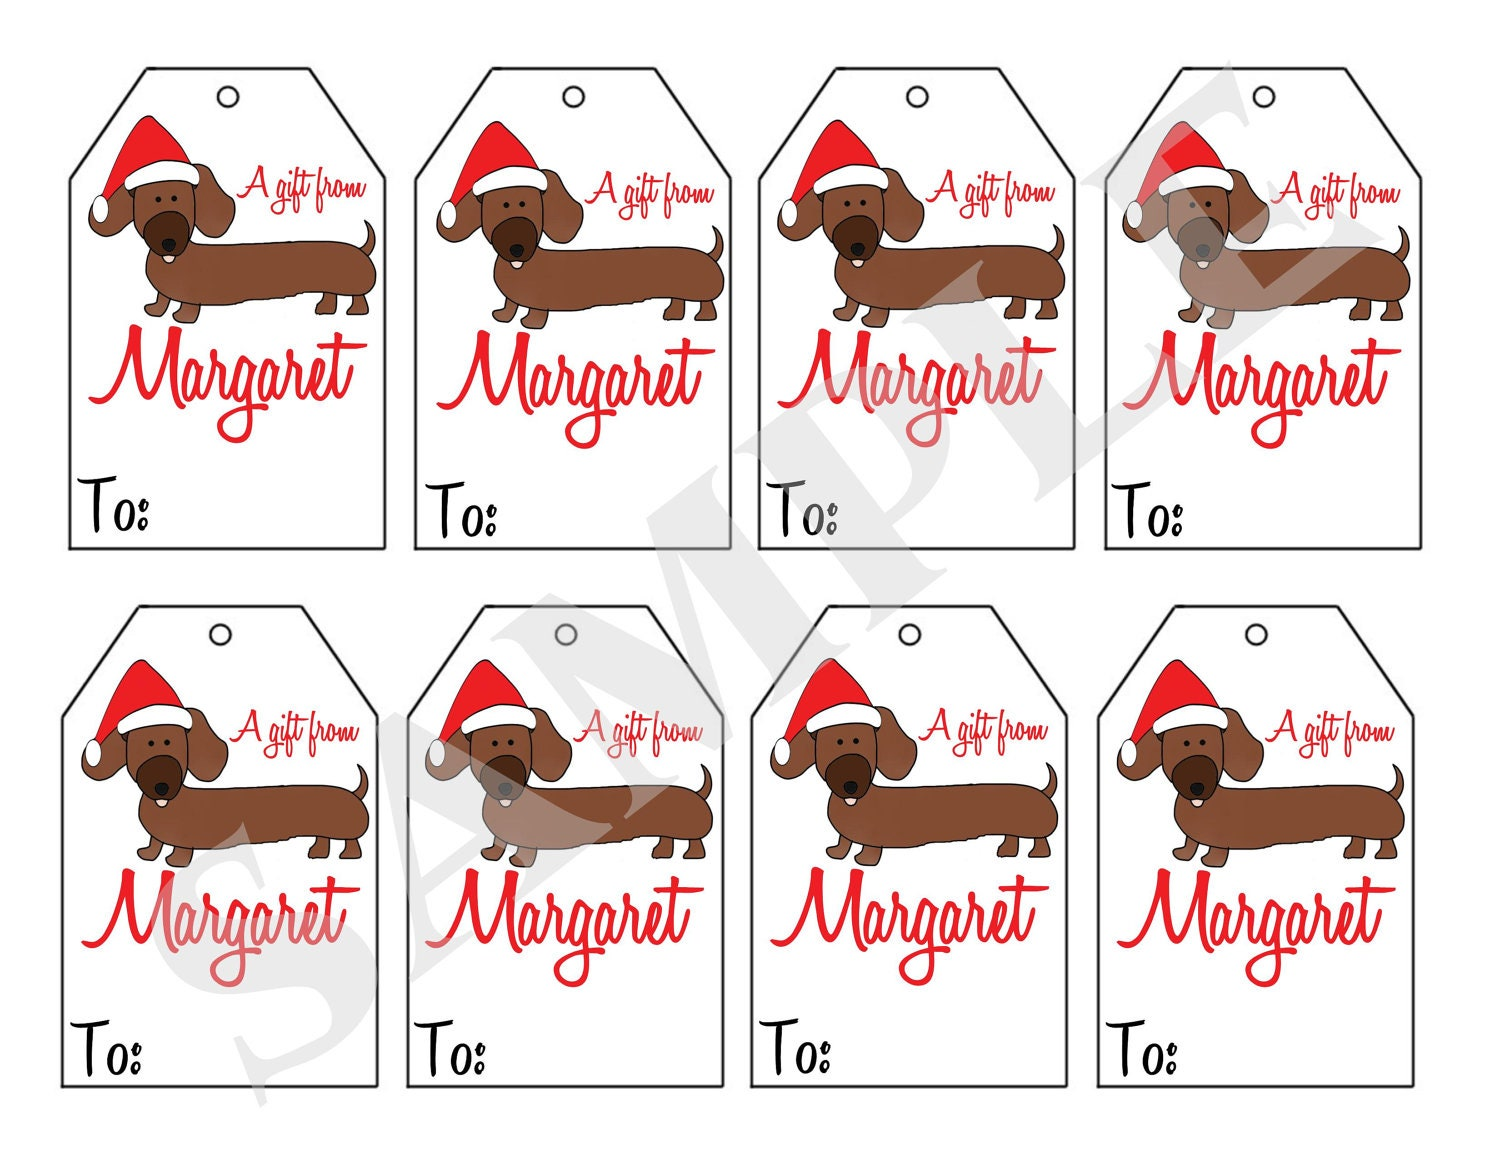 Printable personalized christmas dachshund dog gift tags details printable personalized christmas dachshund dog gift tags negle Image collections